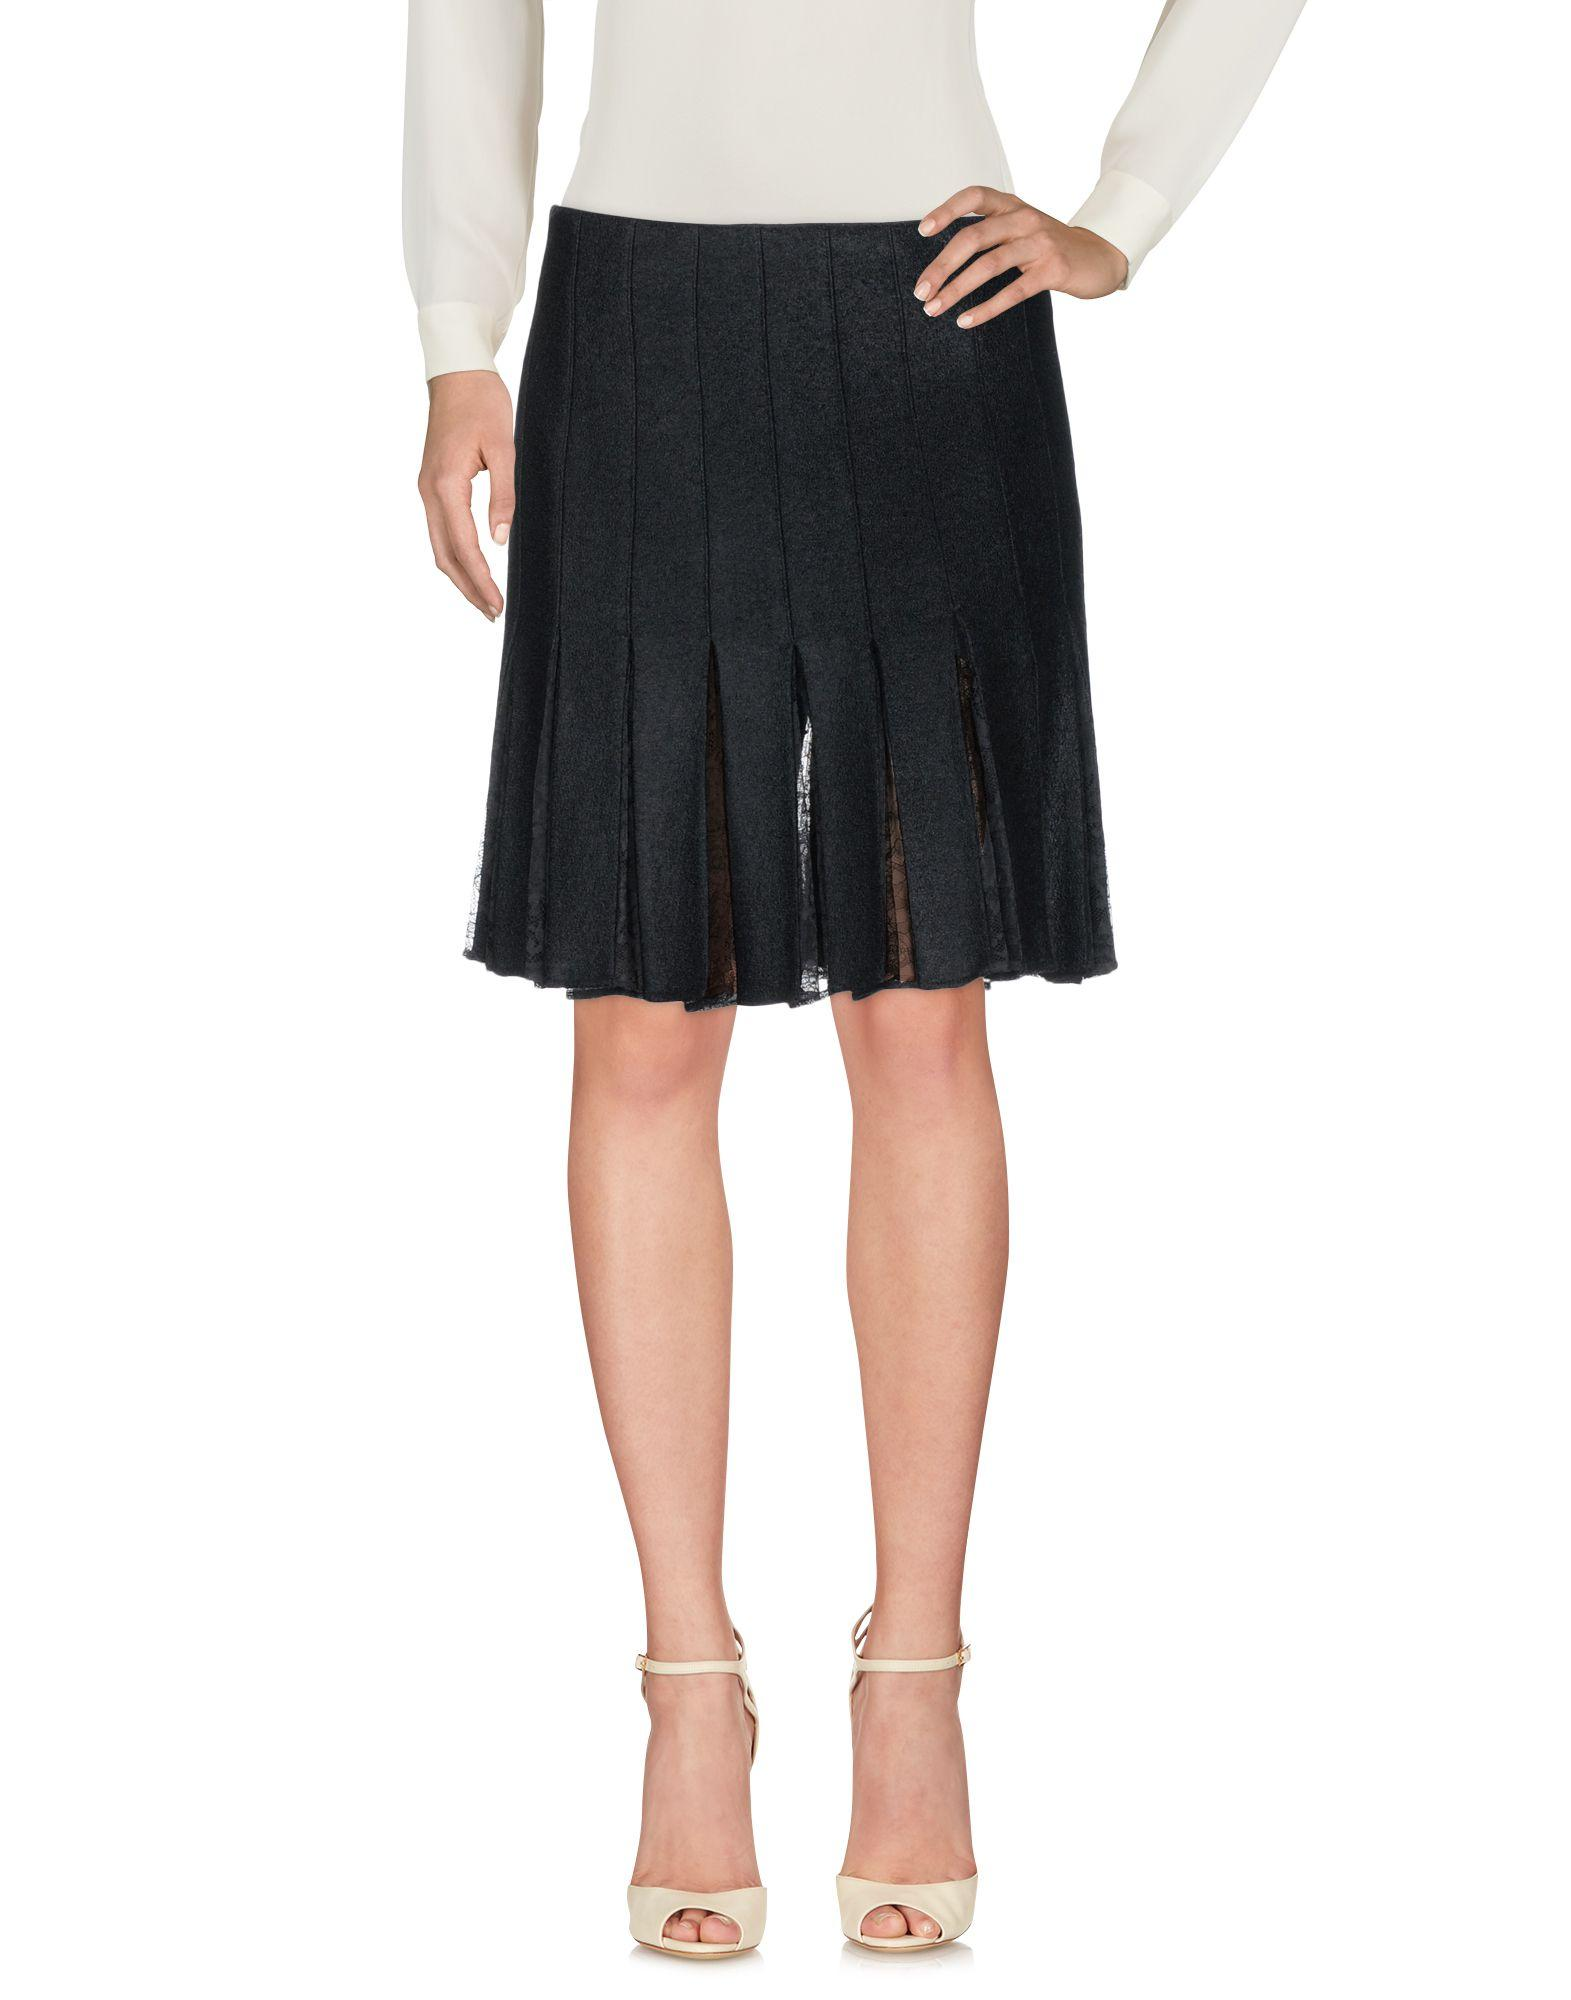 John Galliano Knee Length Skirt In Black